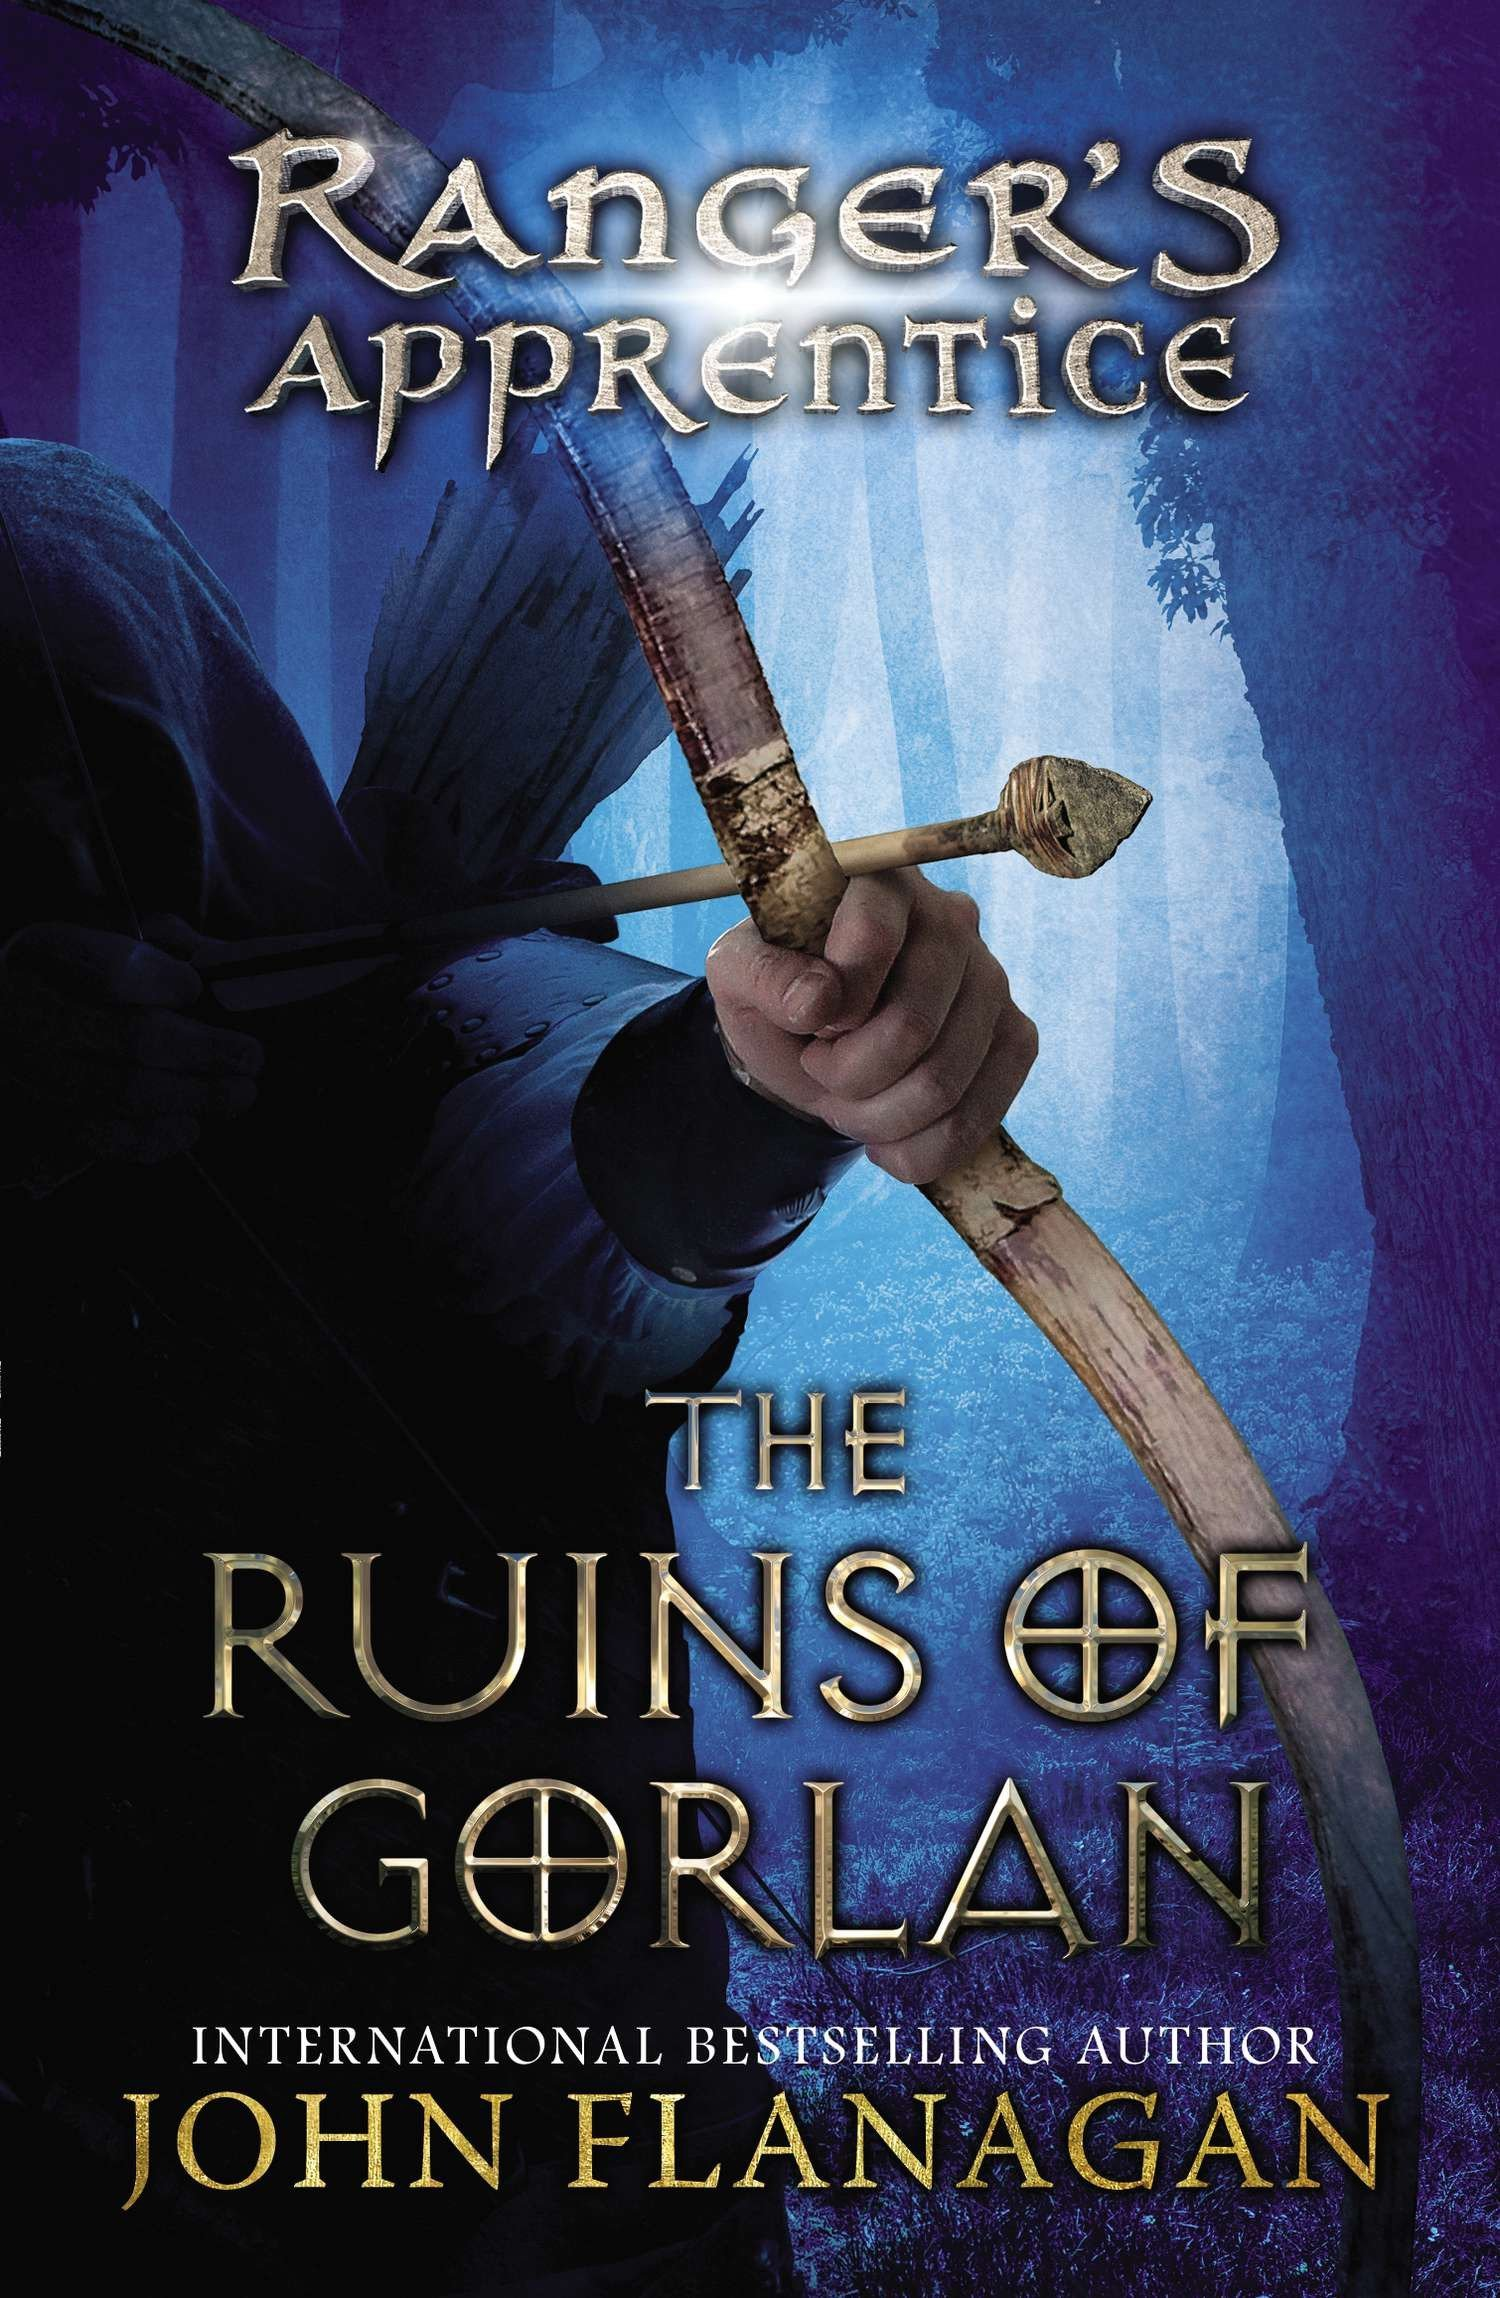 The Ruins of Gorlan (The Ranger's Apprentice, Book 1): Flanagan ...